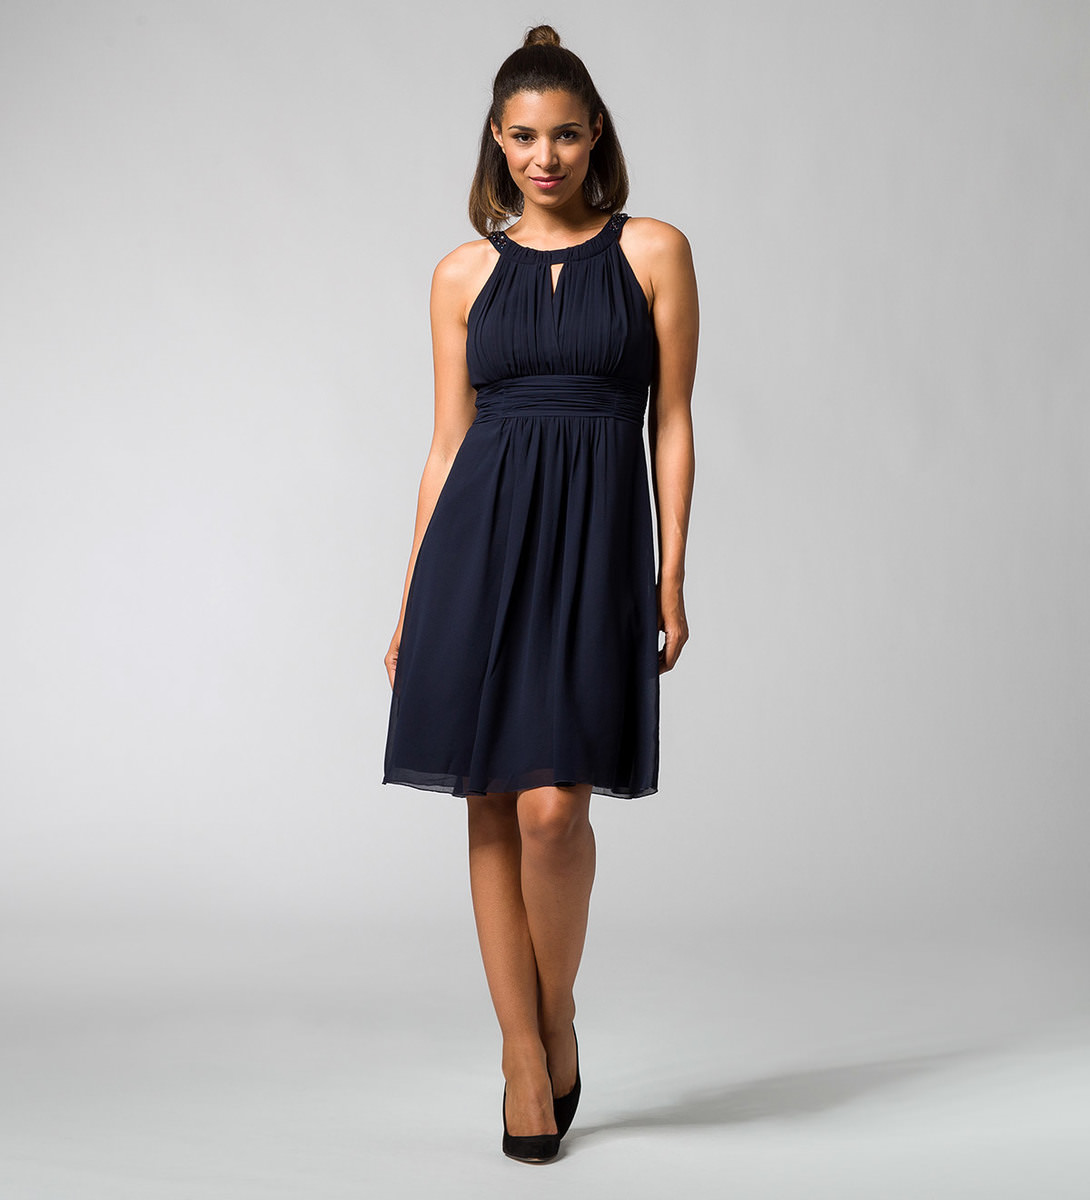 Cocktail-Kleid mit Neckholder in blue black